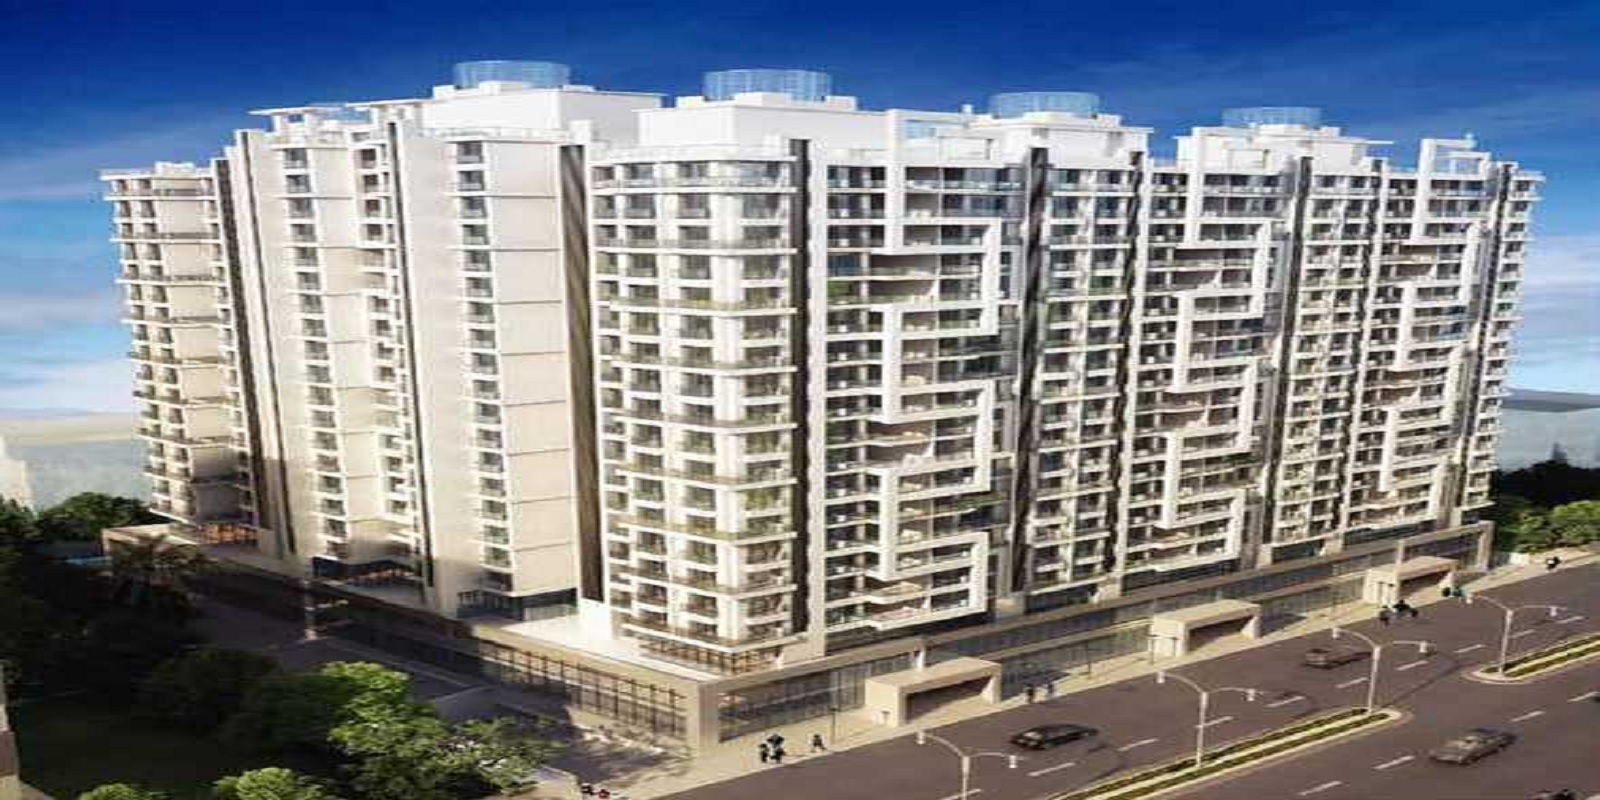 dheeraj views project project large image1